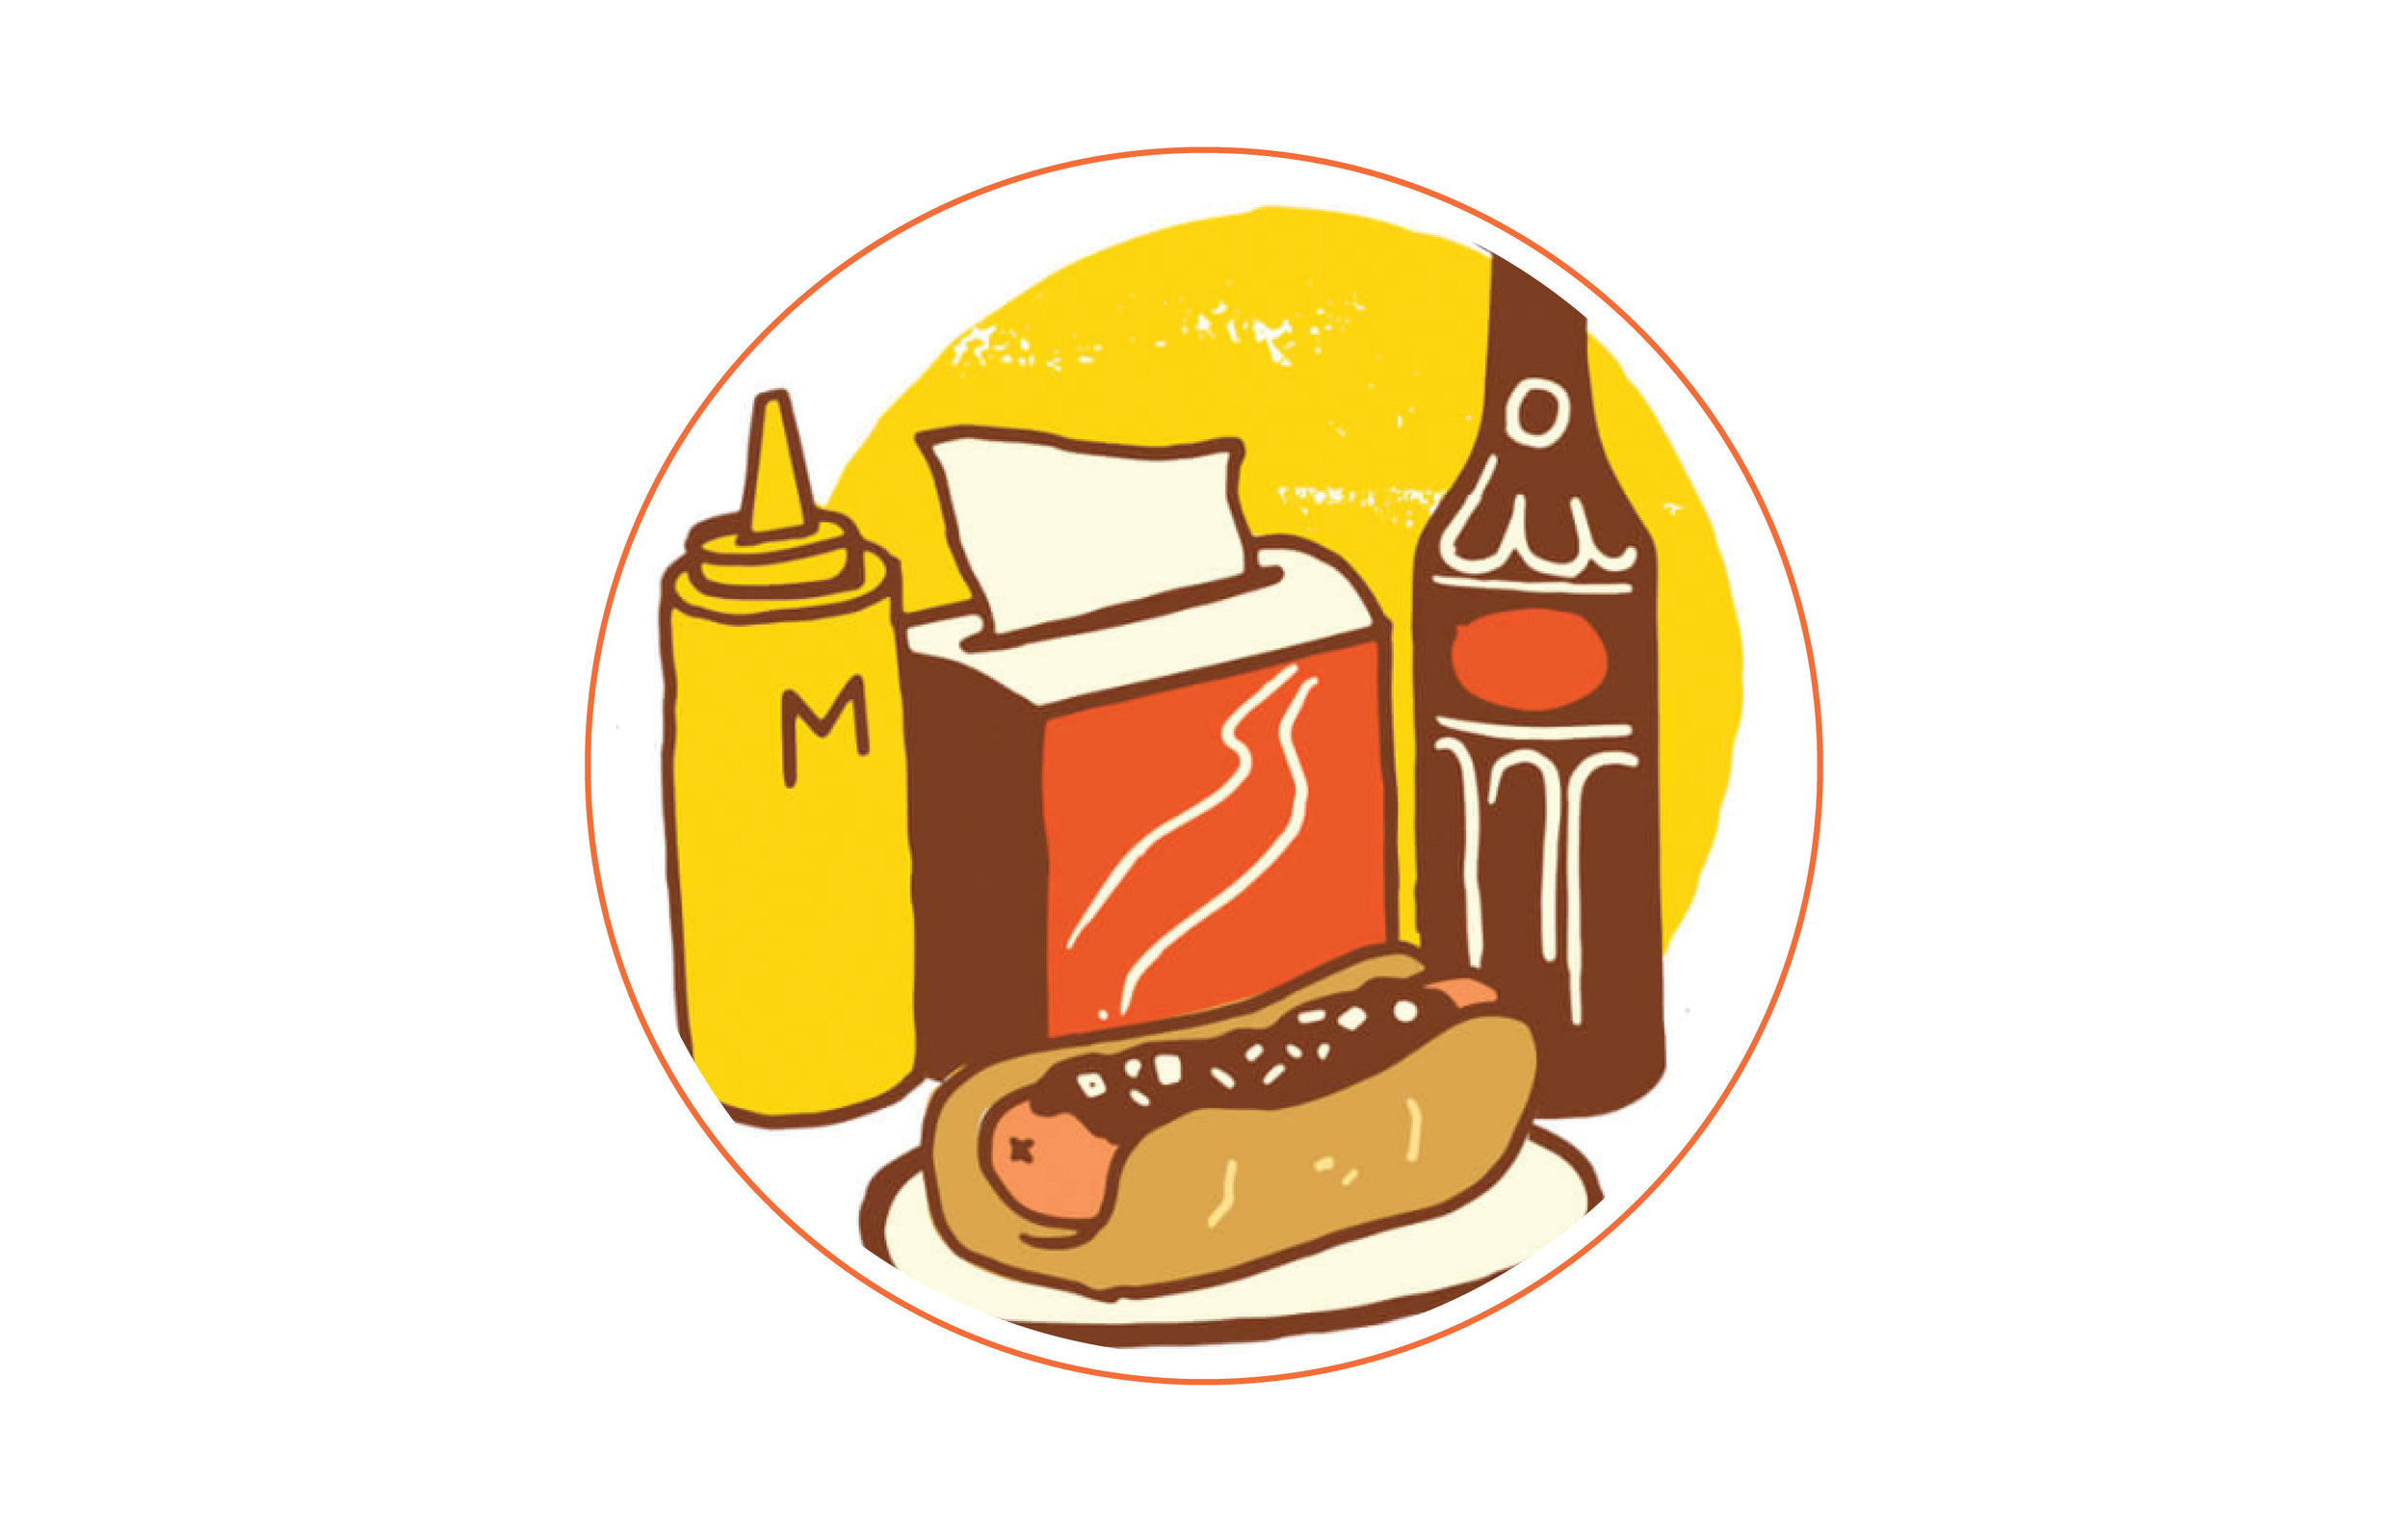 Favorite High School memory? - Going to Biscuitville or Zack's Hotdogs almost every day for senior lunch with my friends.